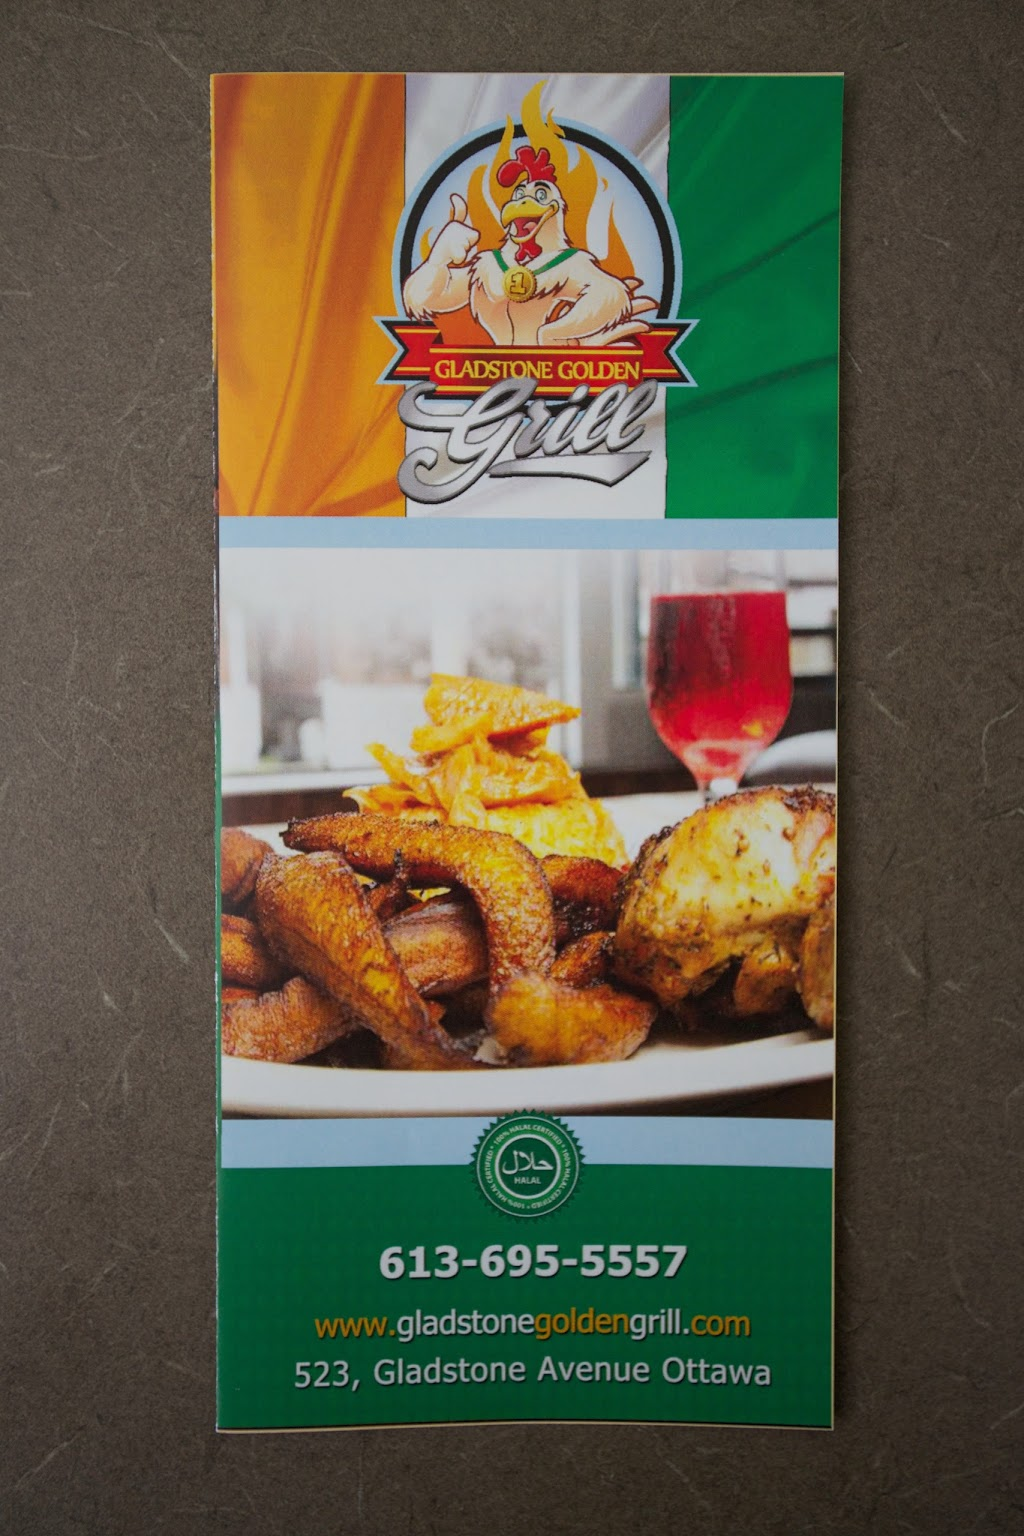 Gladstone Golden Grill | restaurant | 523 Gladstone Ave, Ottawa, ON K1R 5N9, Canada | 6136955557 OR +1 613-695-5557